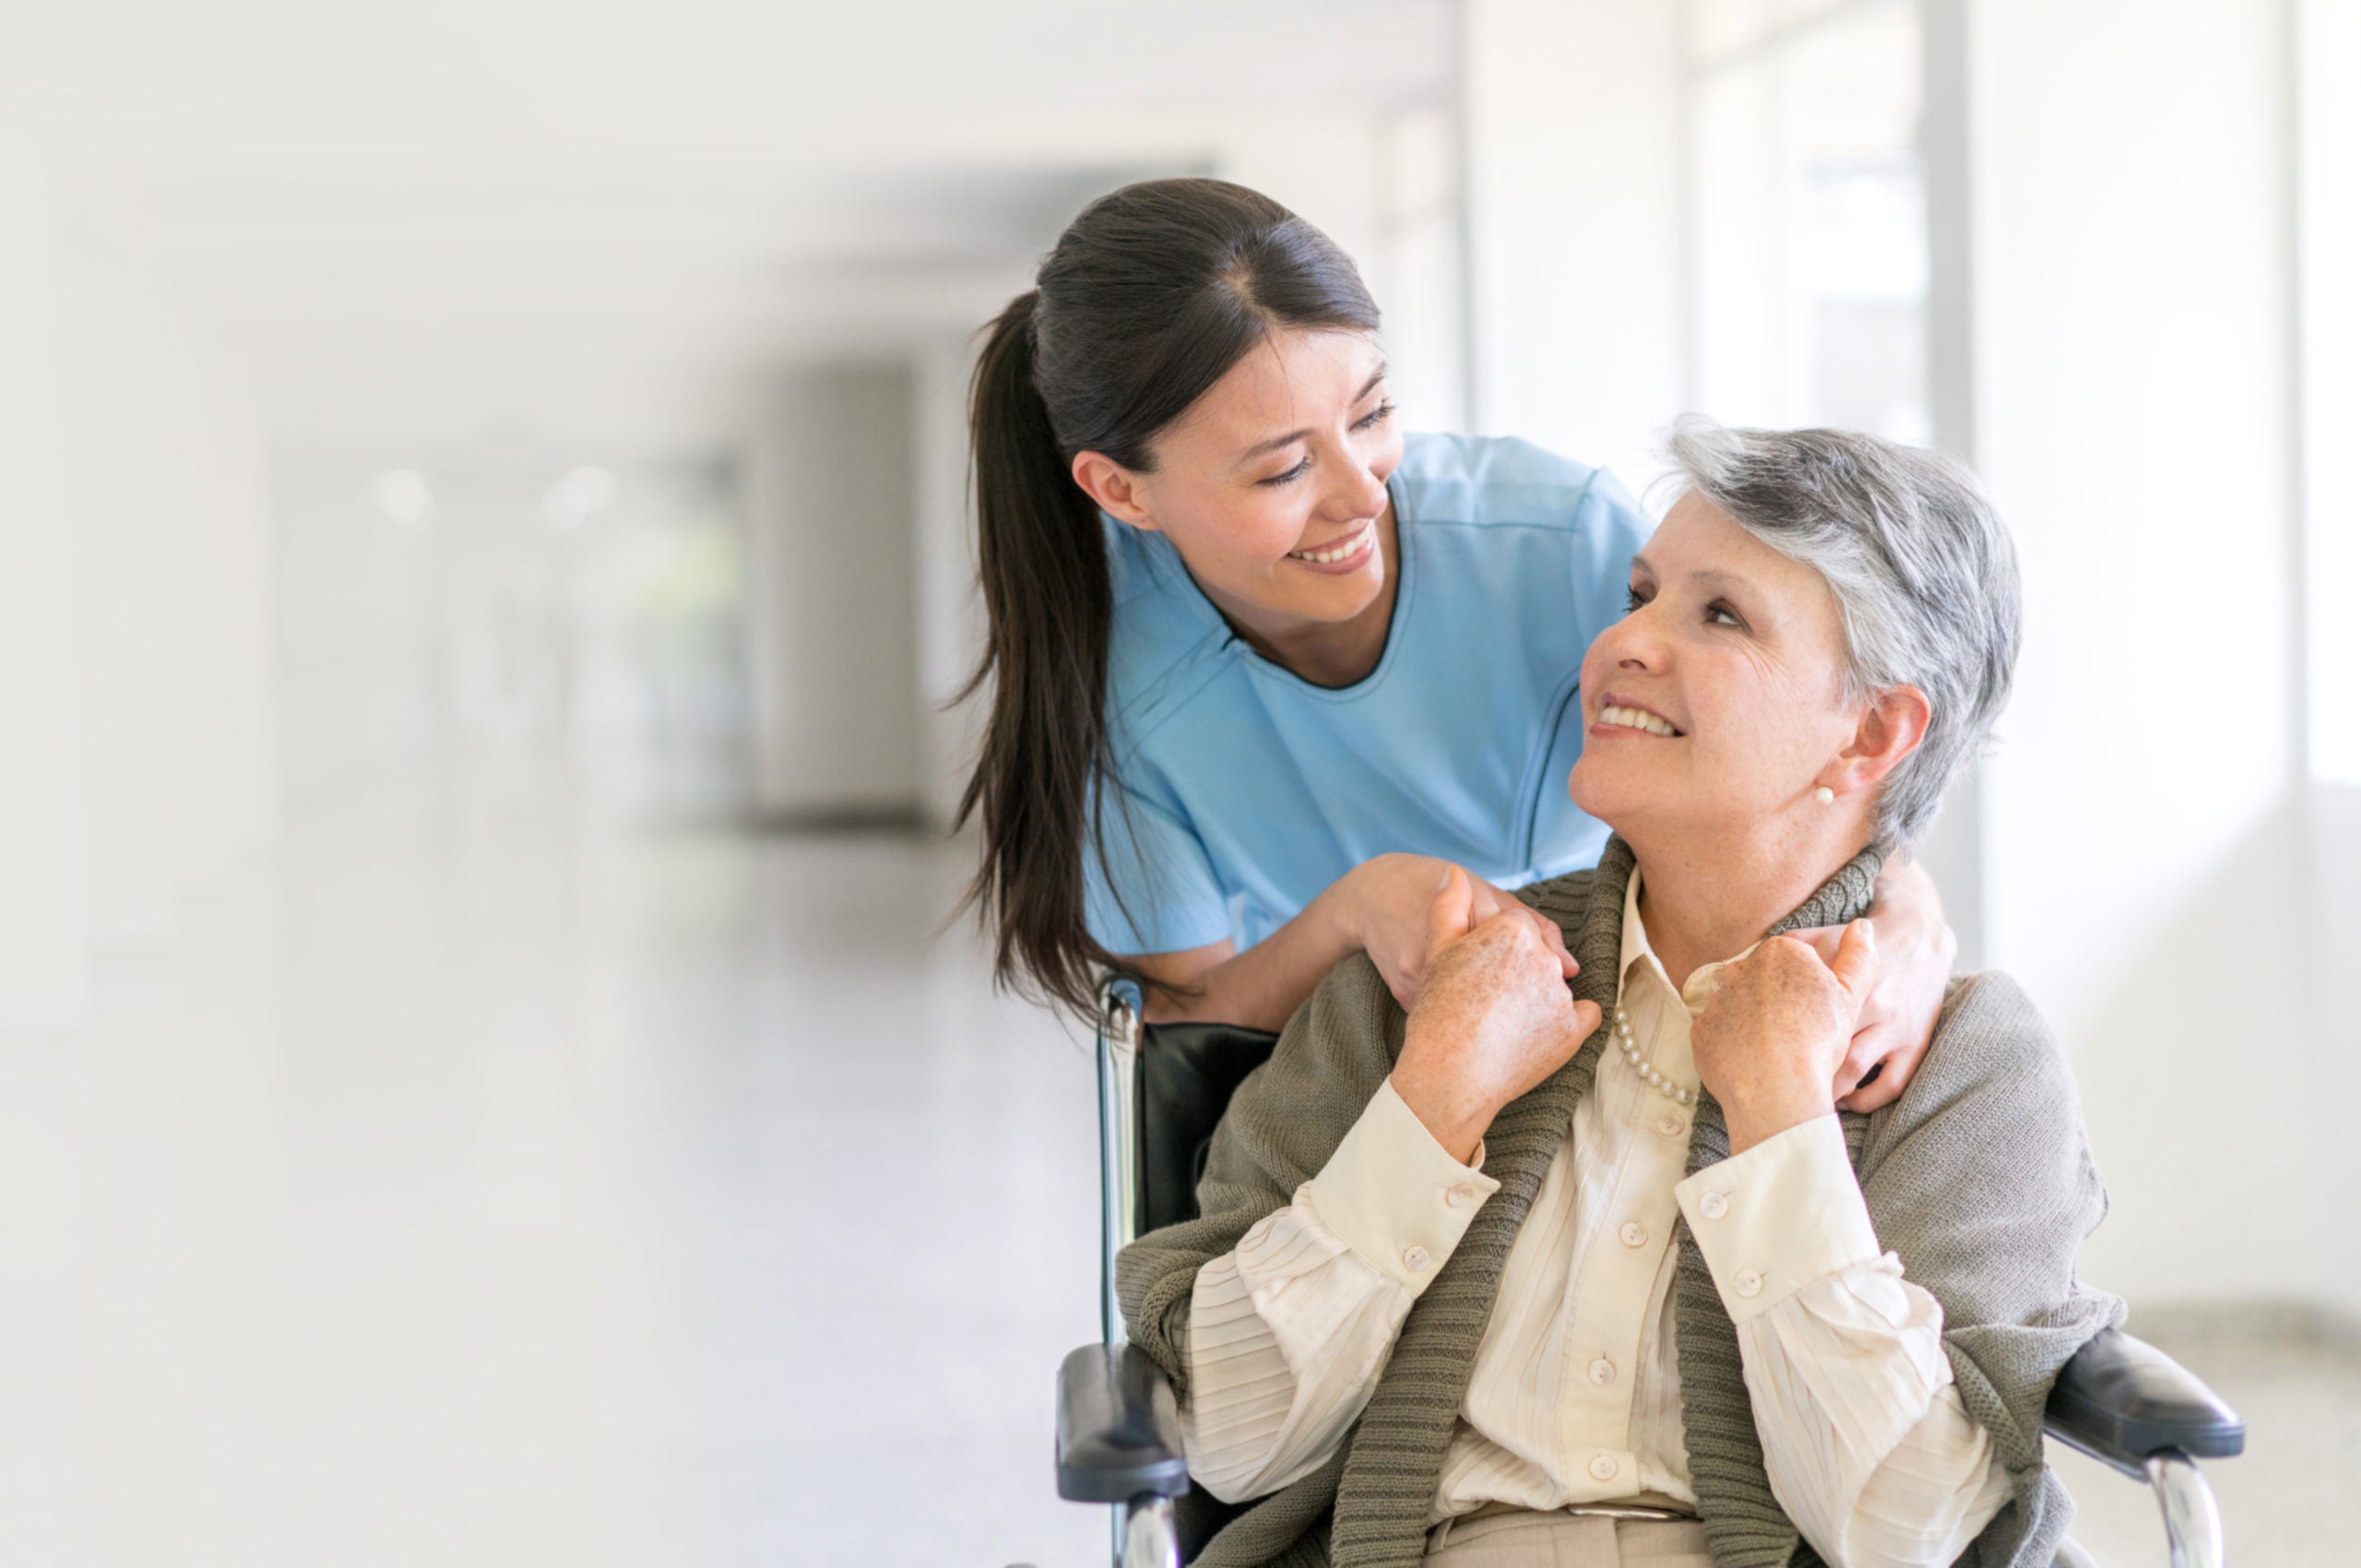 Handicap patient in a wheelchair at the hospital talking to a friendly nurse and looking very happy - healthcare and medicine concepts